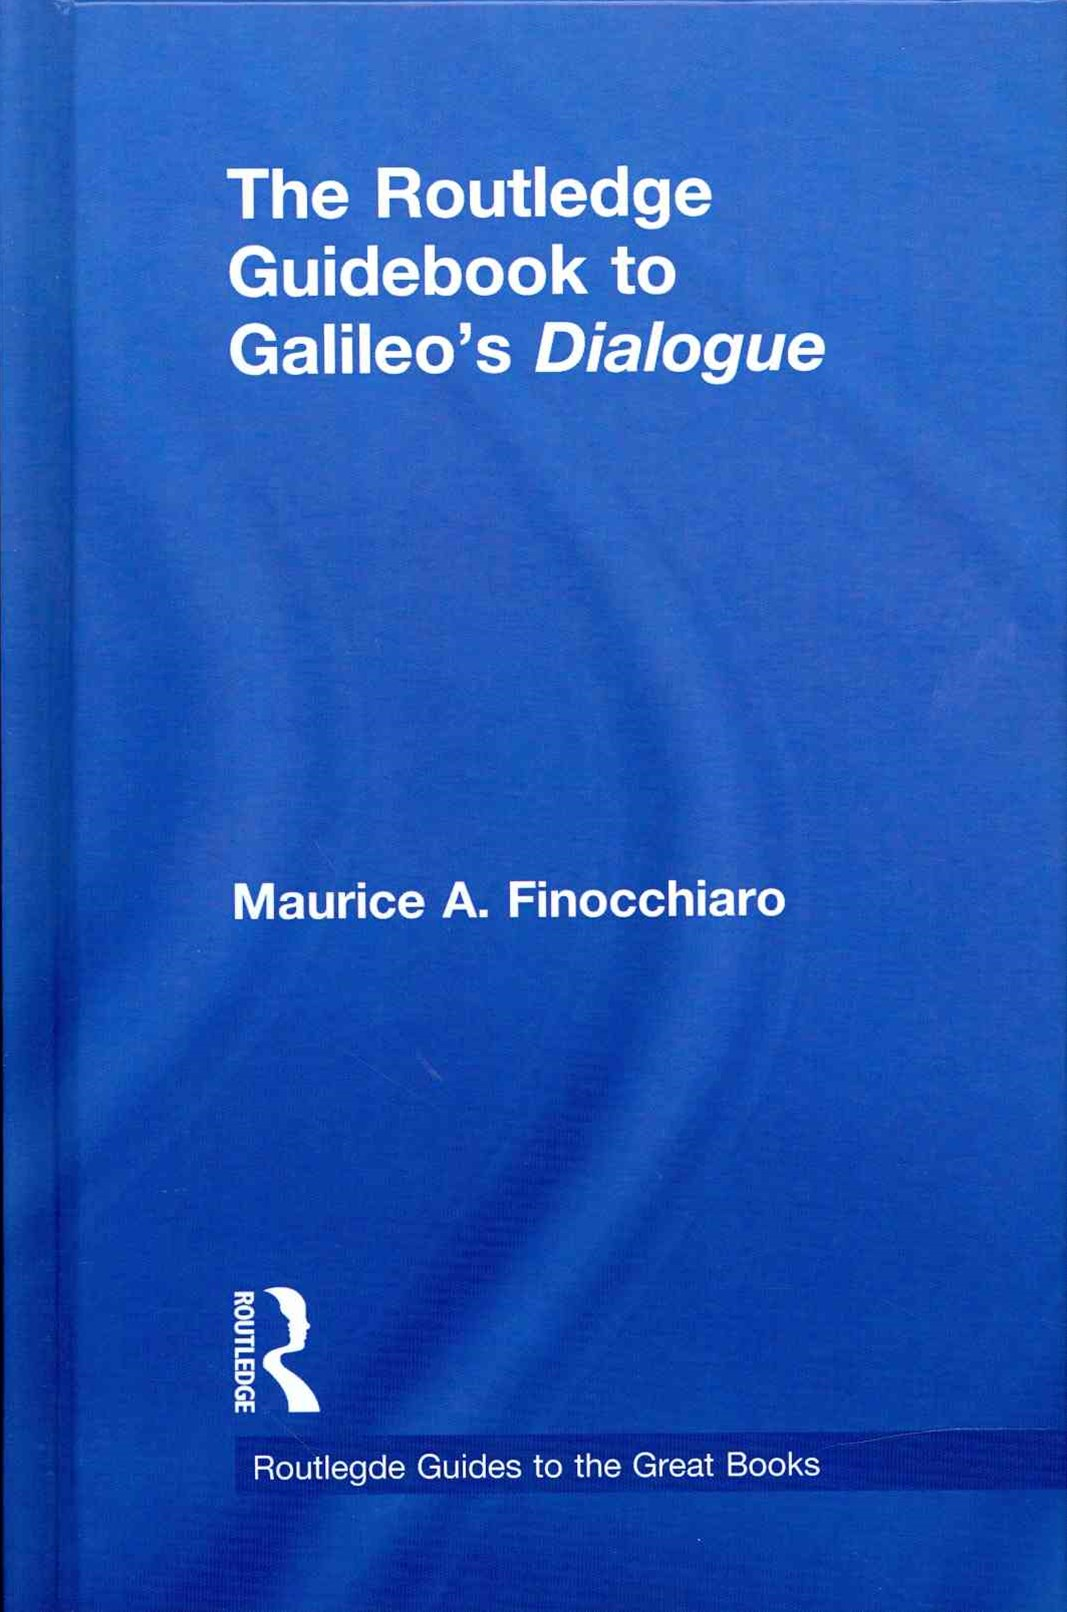 Routledge Guidebook to Galileo's Dialogue